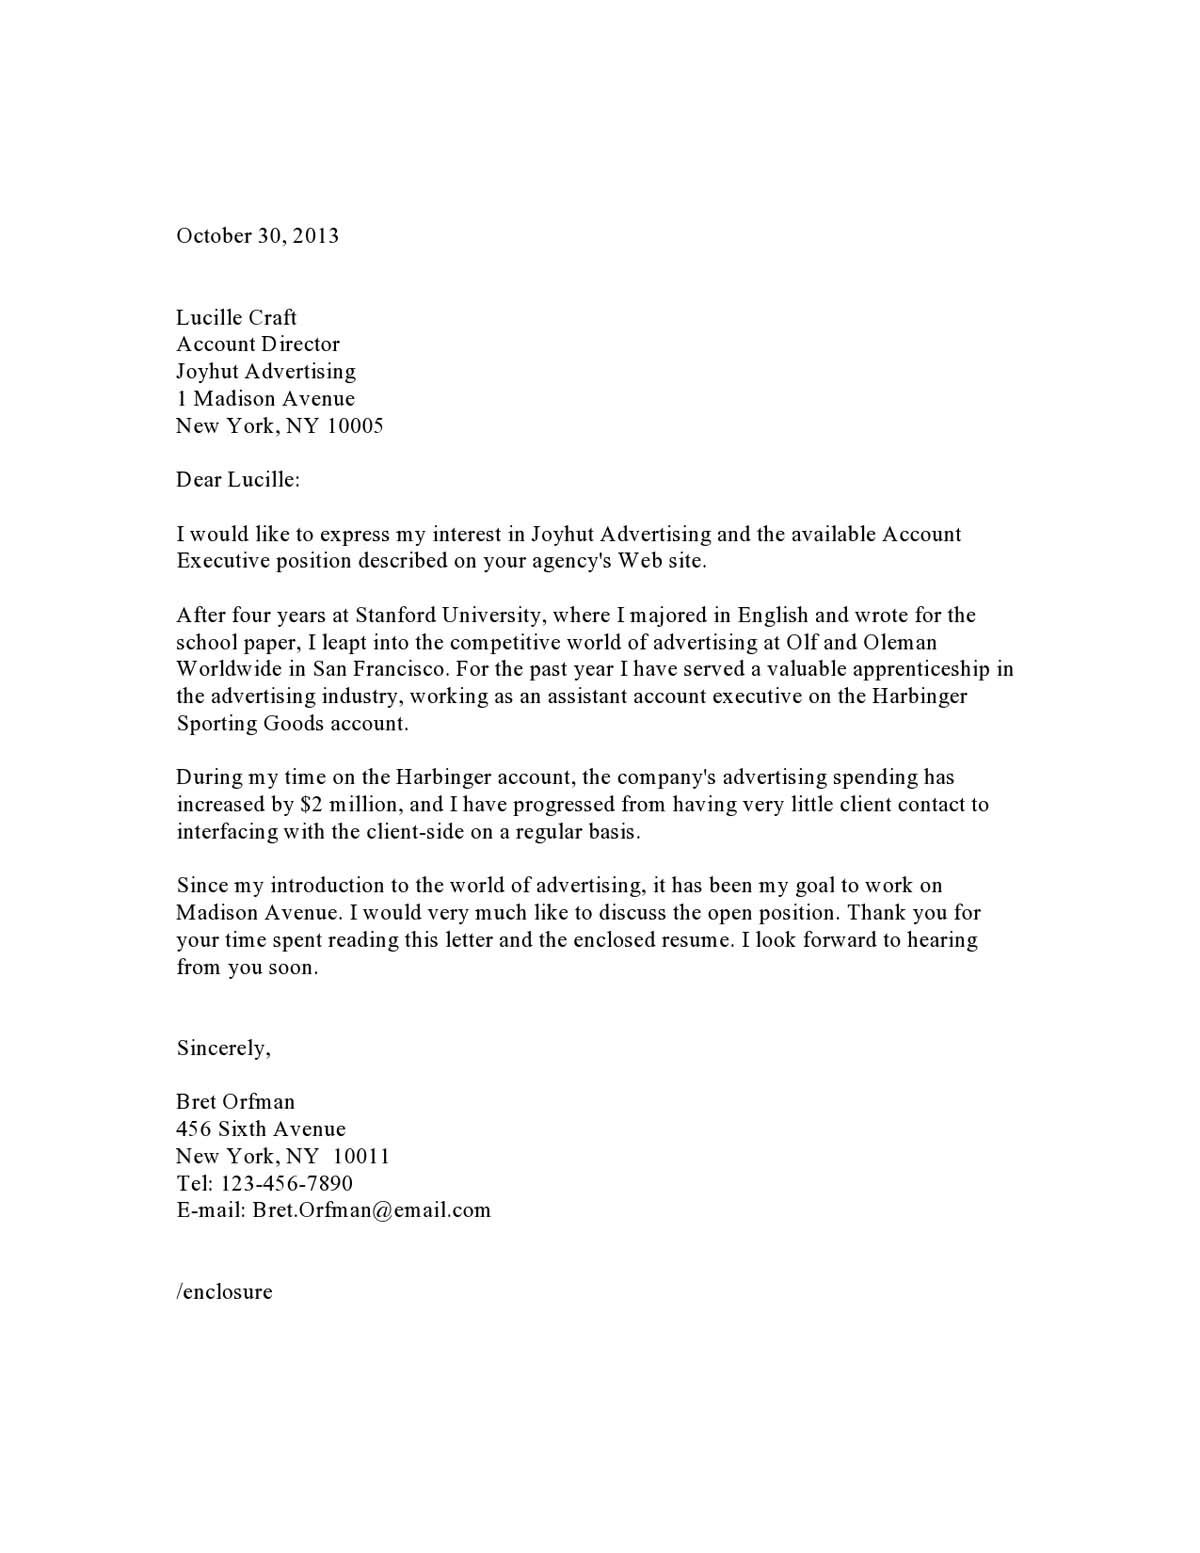 004 Stunning Excellent Covering Letter Example Sample  ExamplesFull